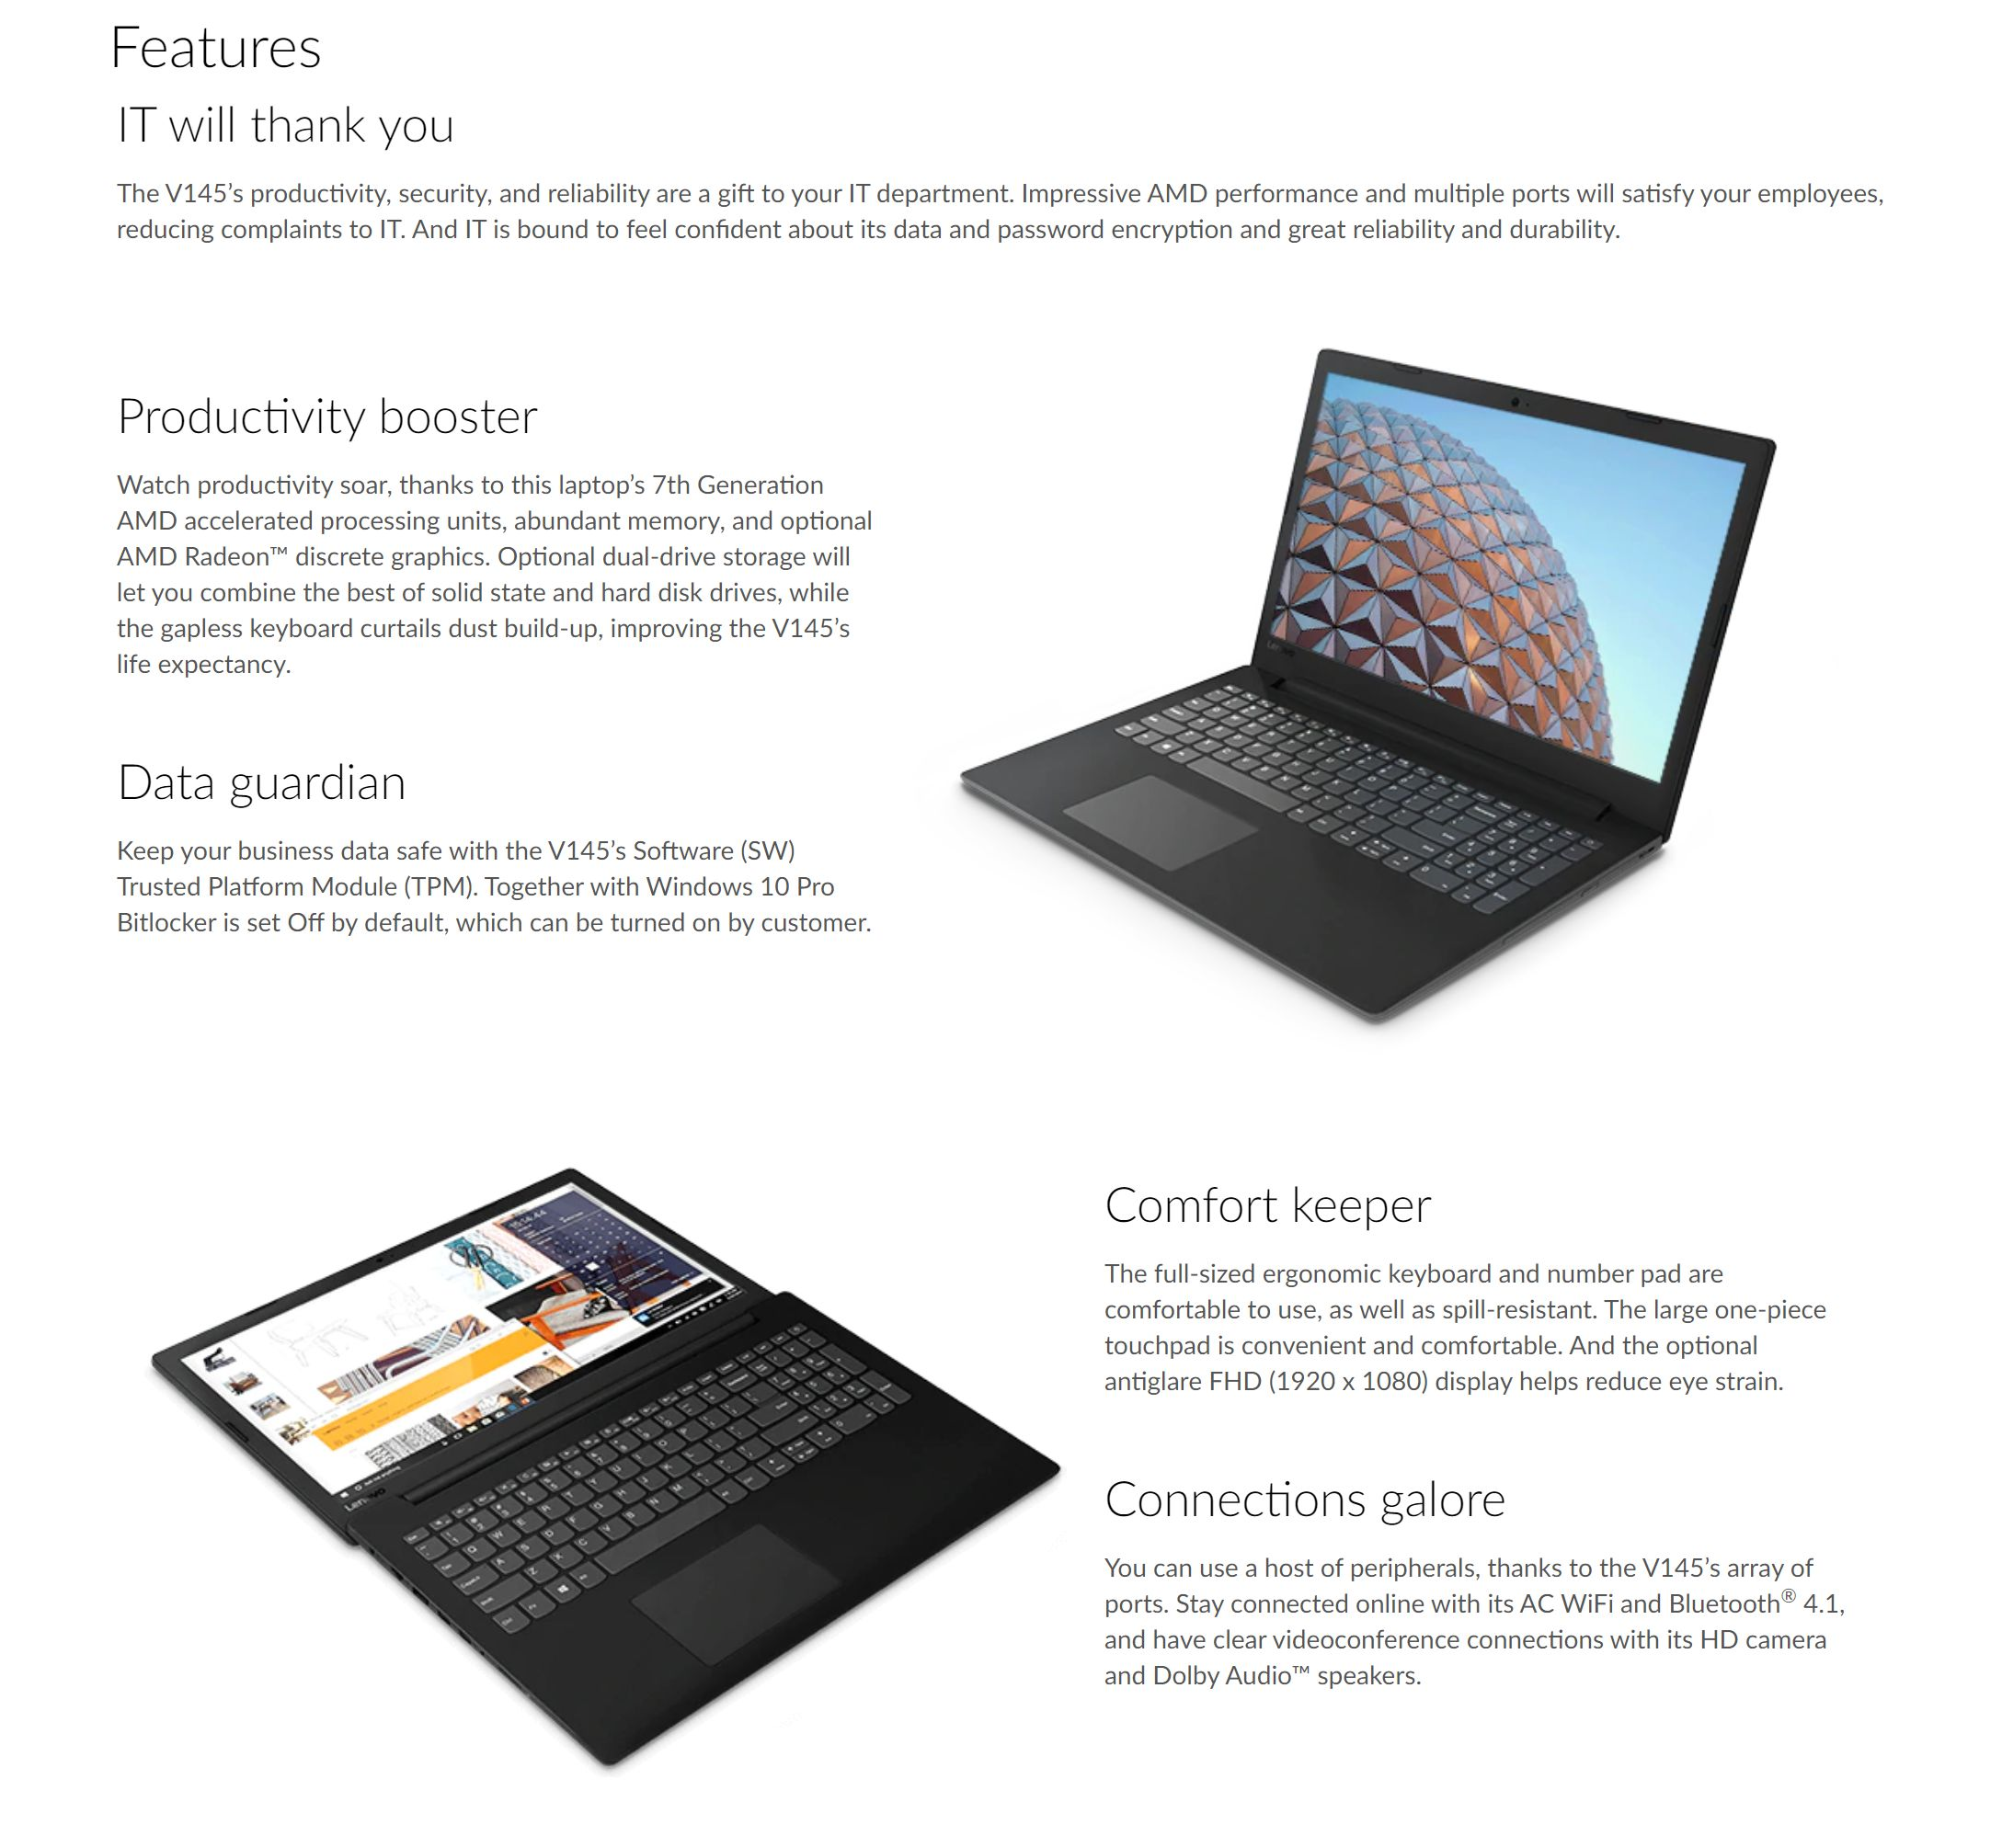 #1636 - 'Lenovo V145 (15_) I 15_ laptop for everyday business I Lenovo UK' - www_lenovo_com.jpg